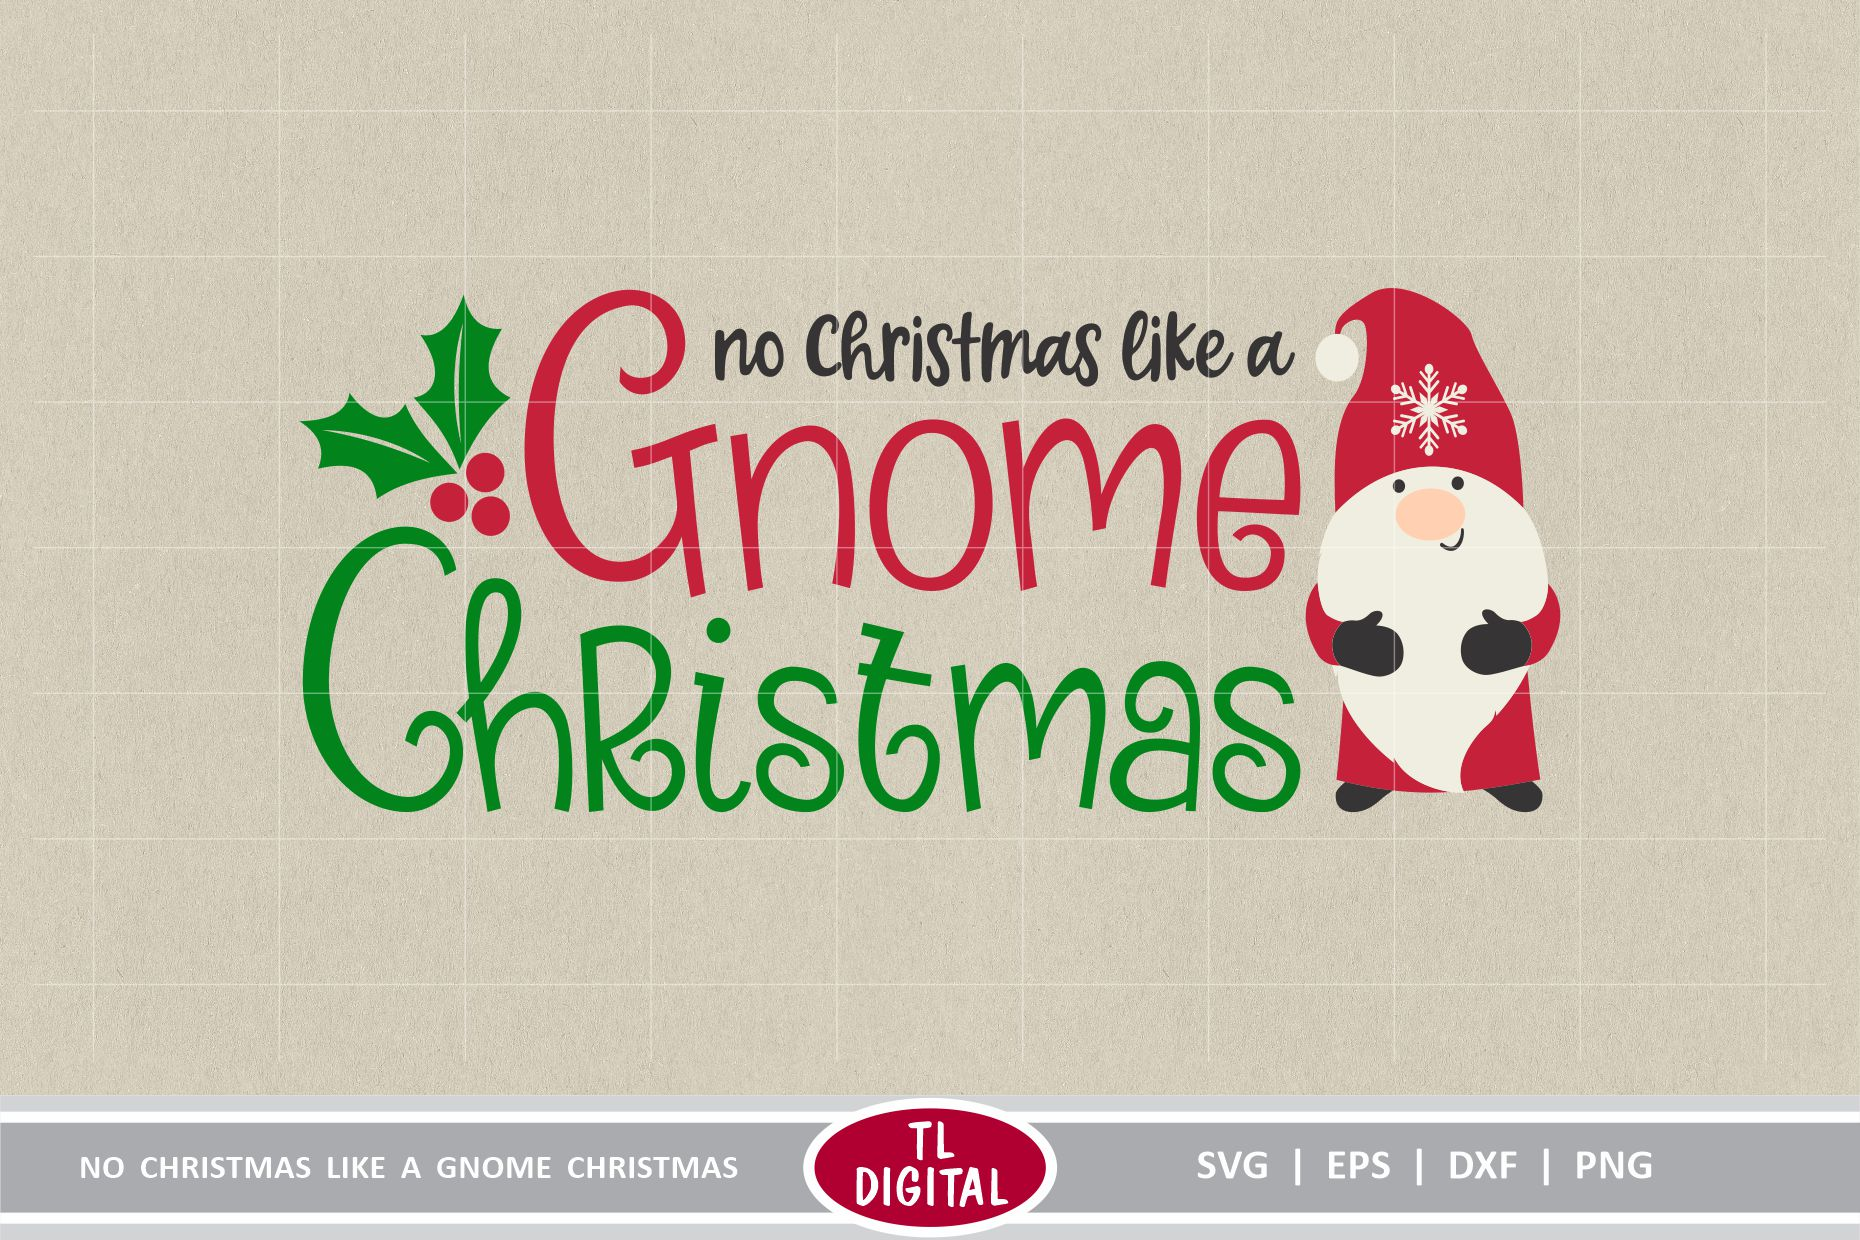 Download Free No Christmas Like A Gnome Christmas Graphic By Tl Digital Creative Fabrica for Cricut Explore, Silhouette and other cutting machines.